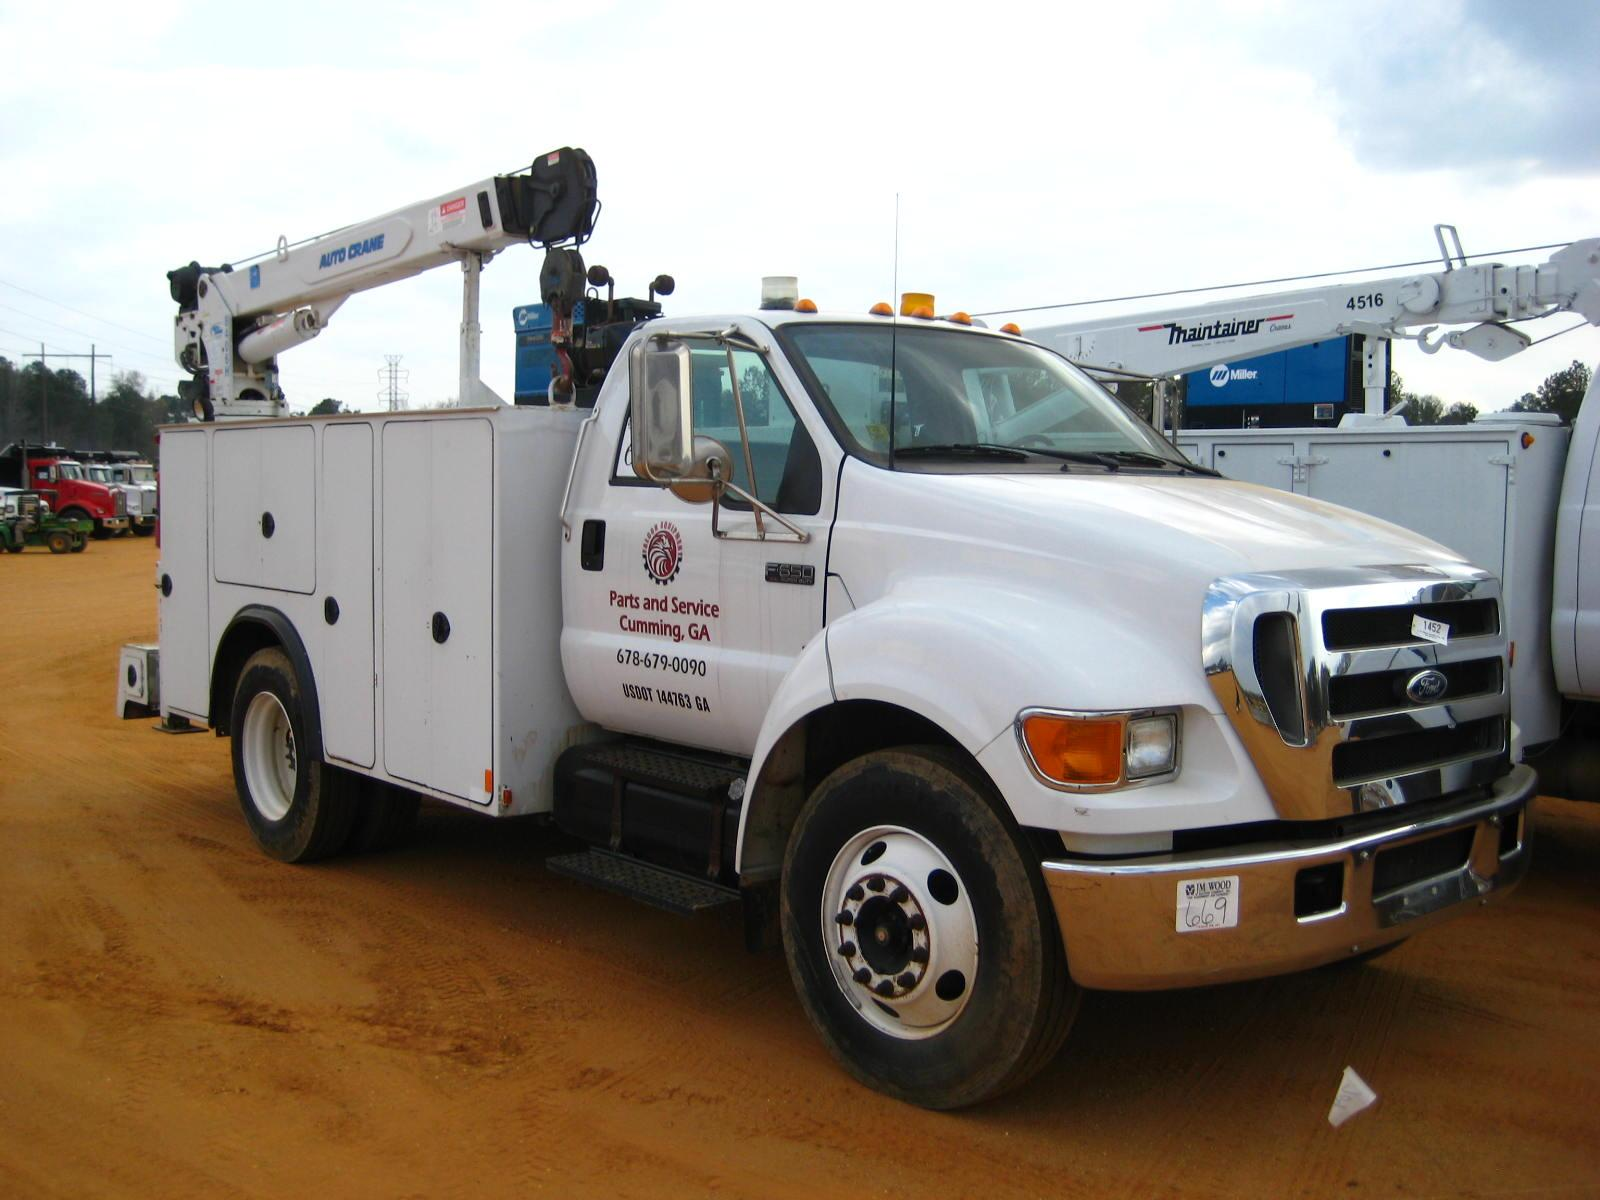 hight resolution of image 1 2004 ford f650 super duty s a service truck